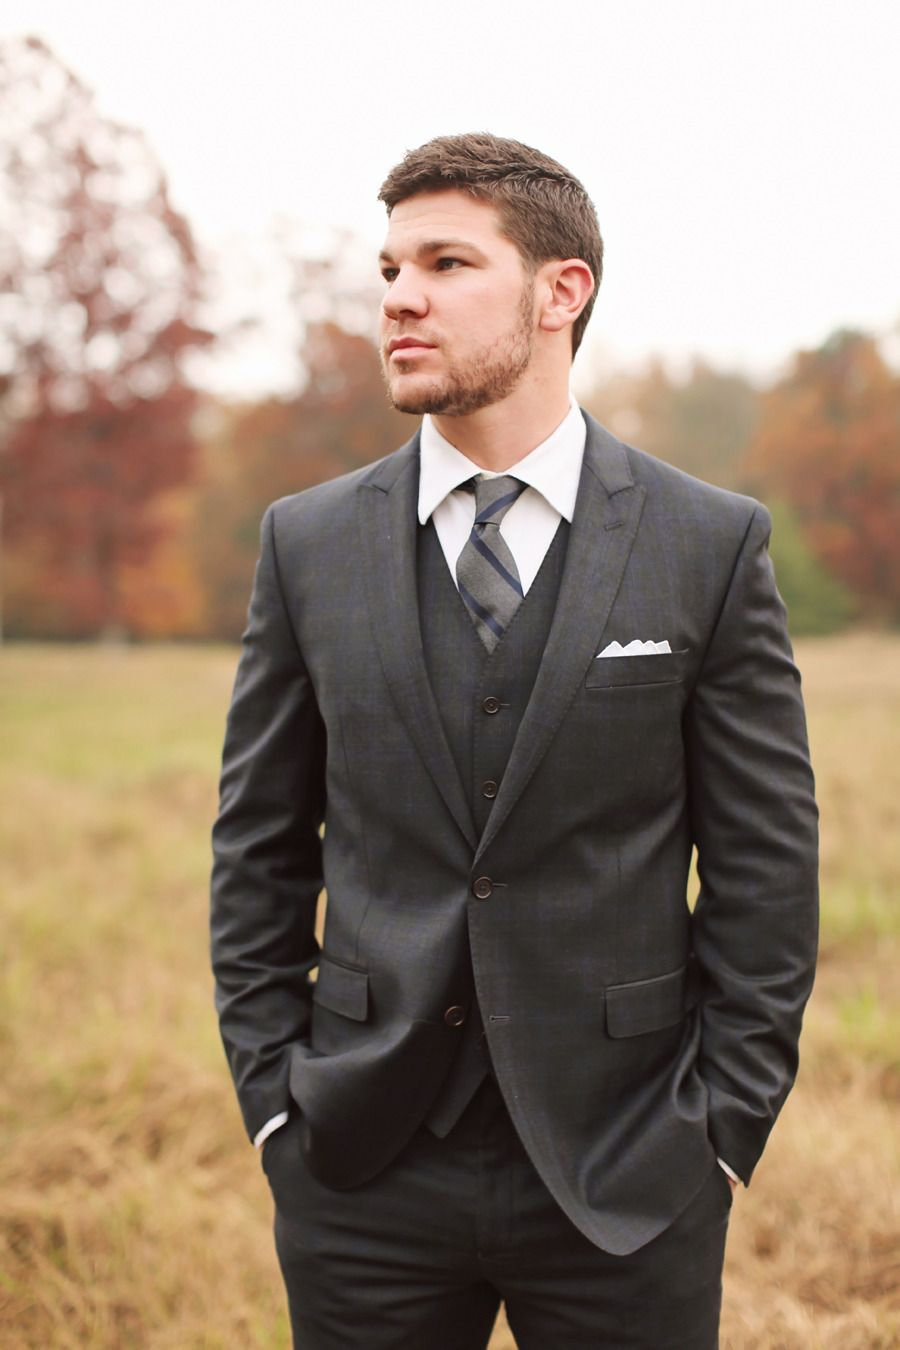 Louisiana Rustic Chic Wedding Inspiration Dark Gray Suit